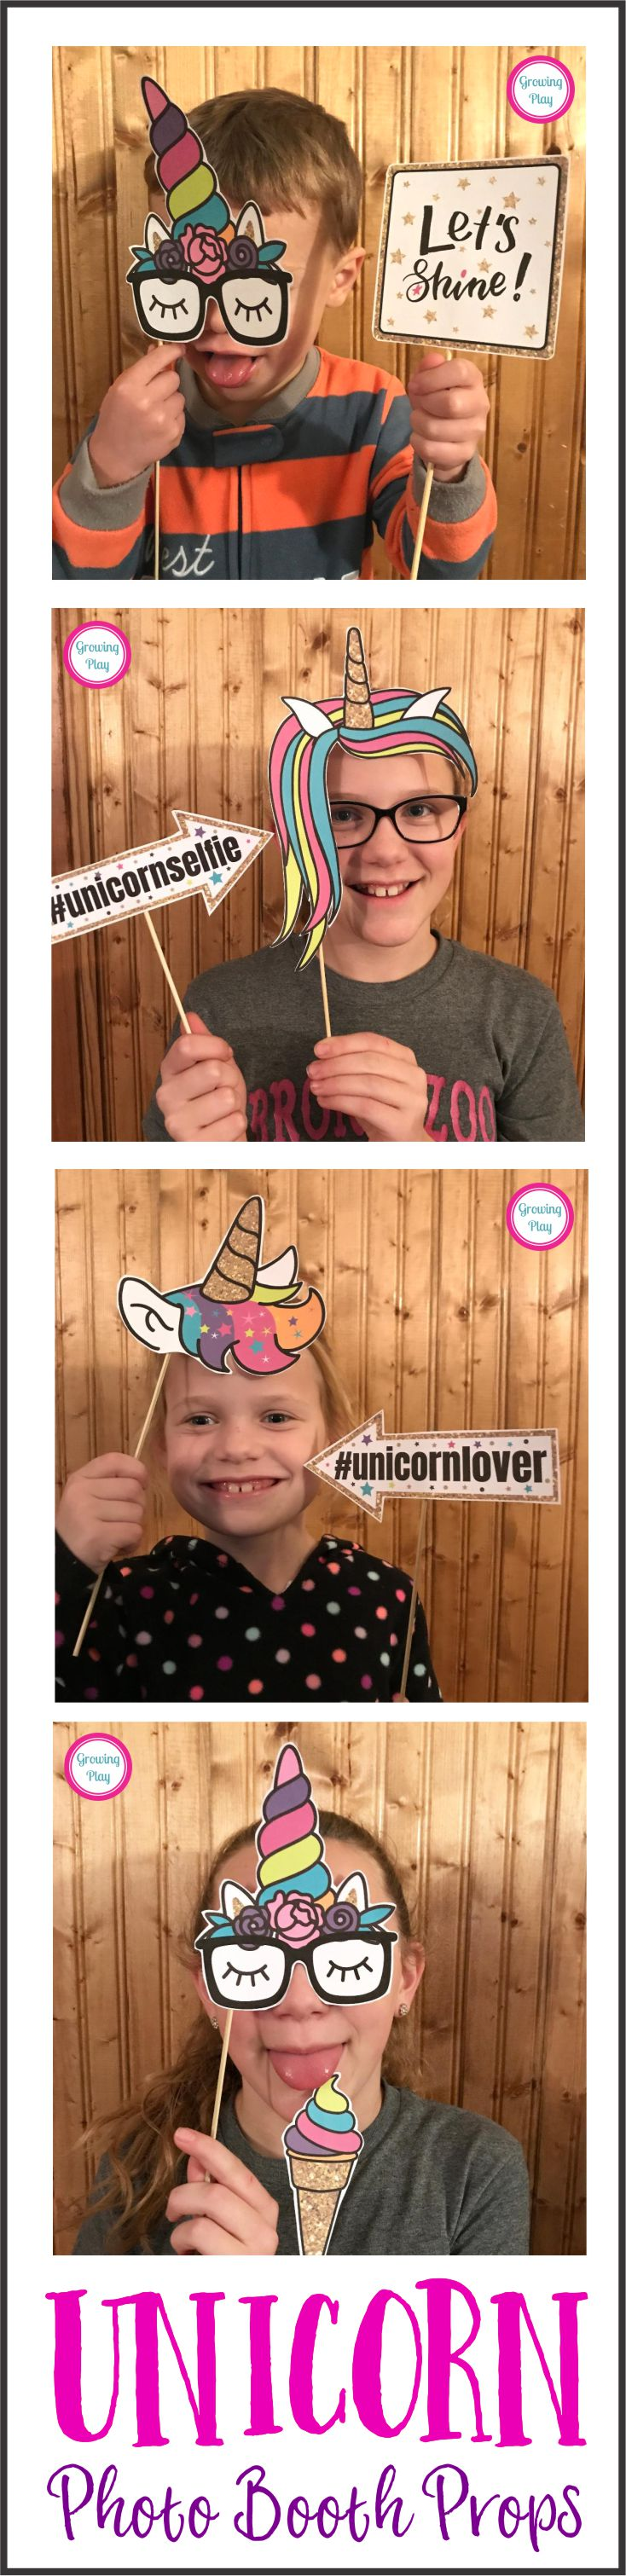 Unicorn Photo Booth Shoot